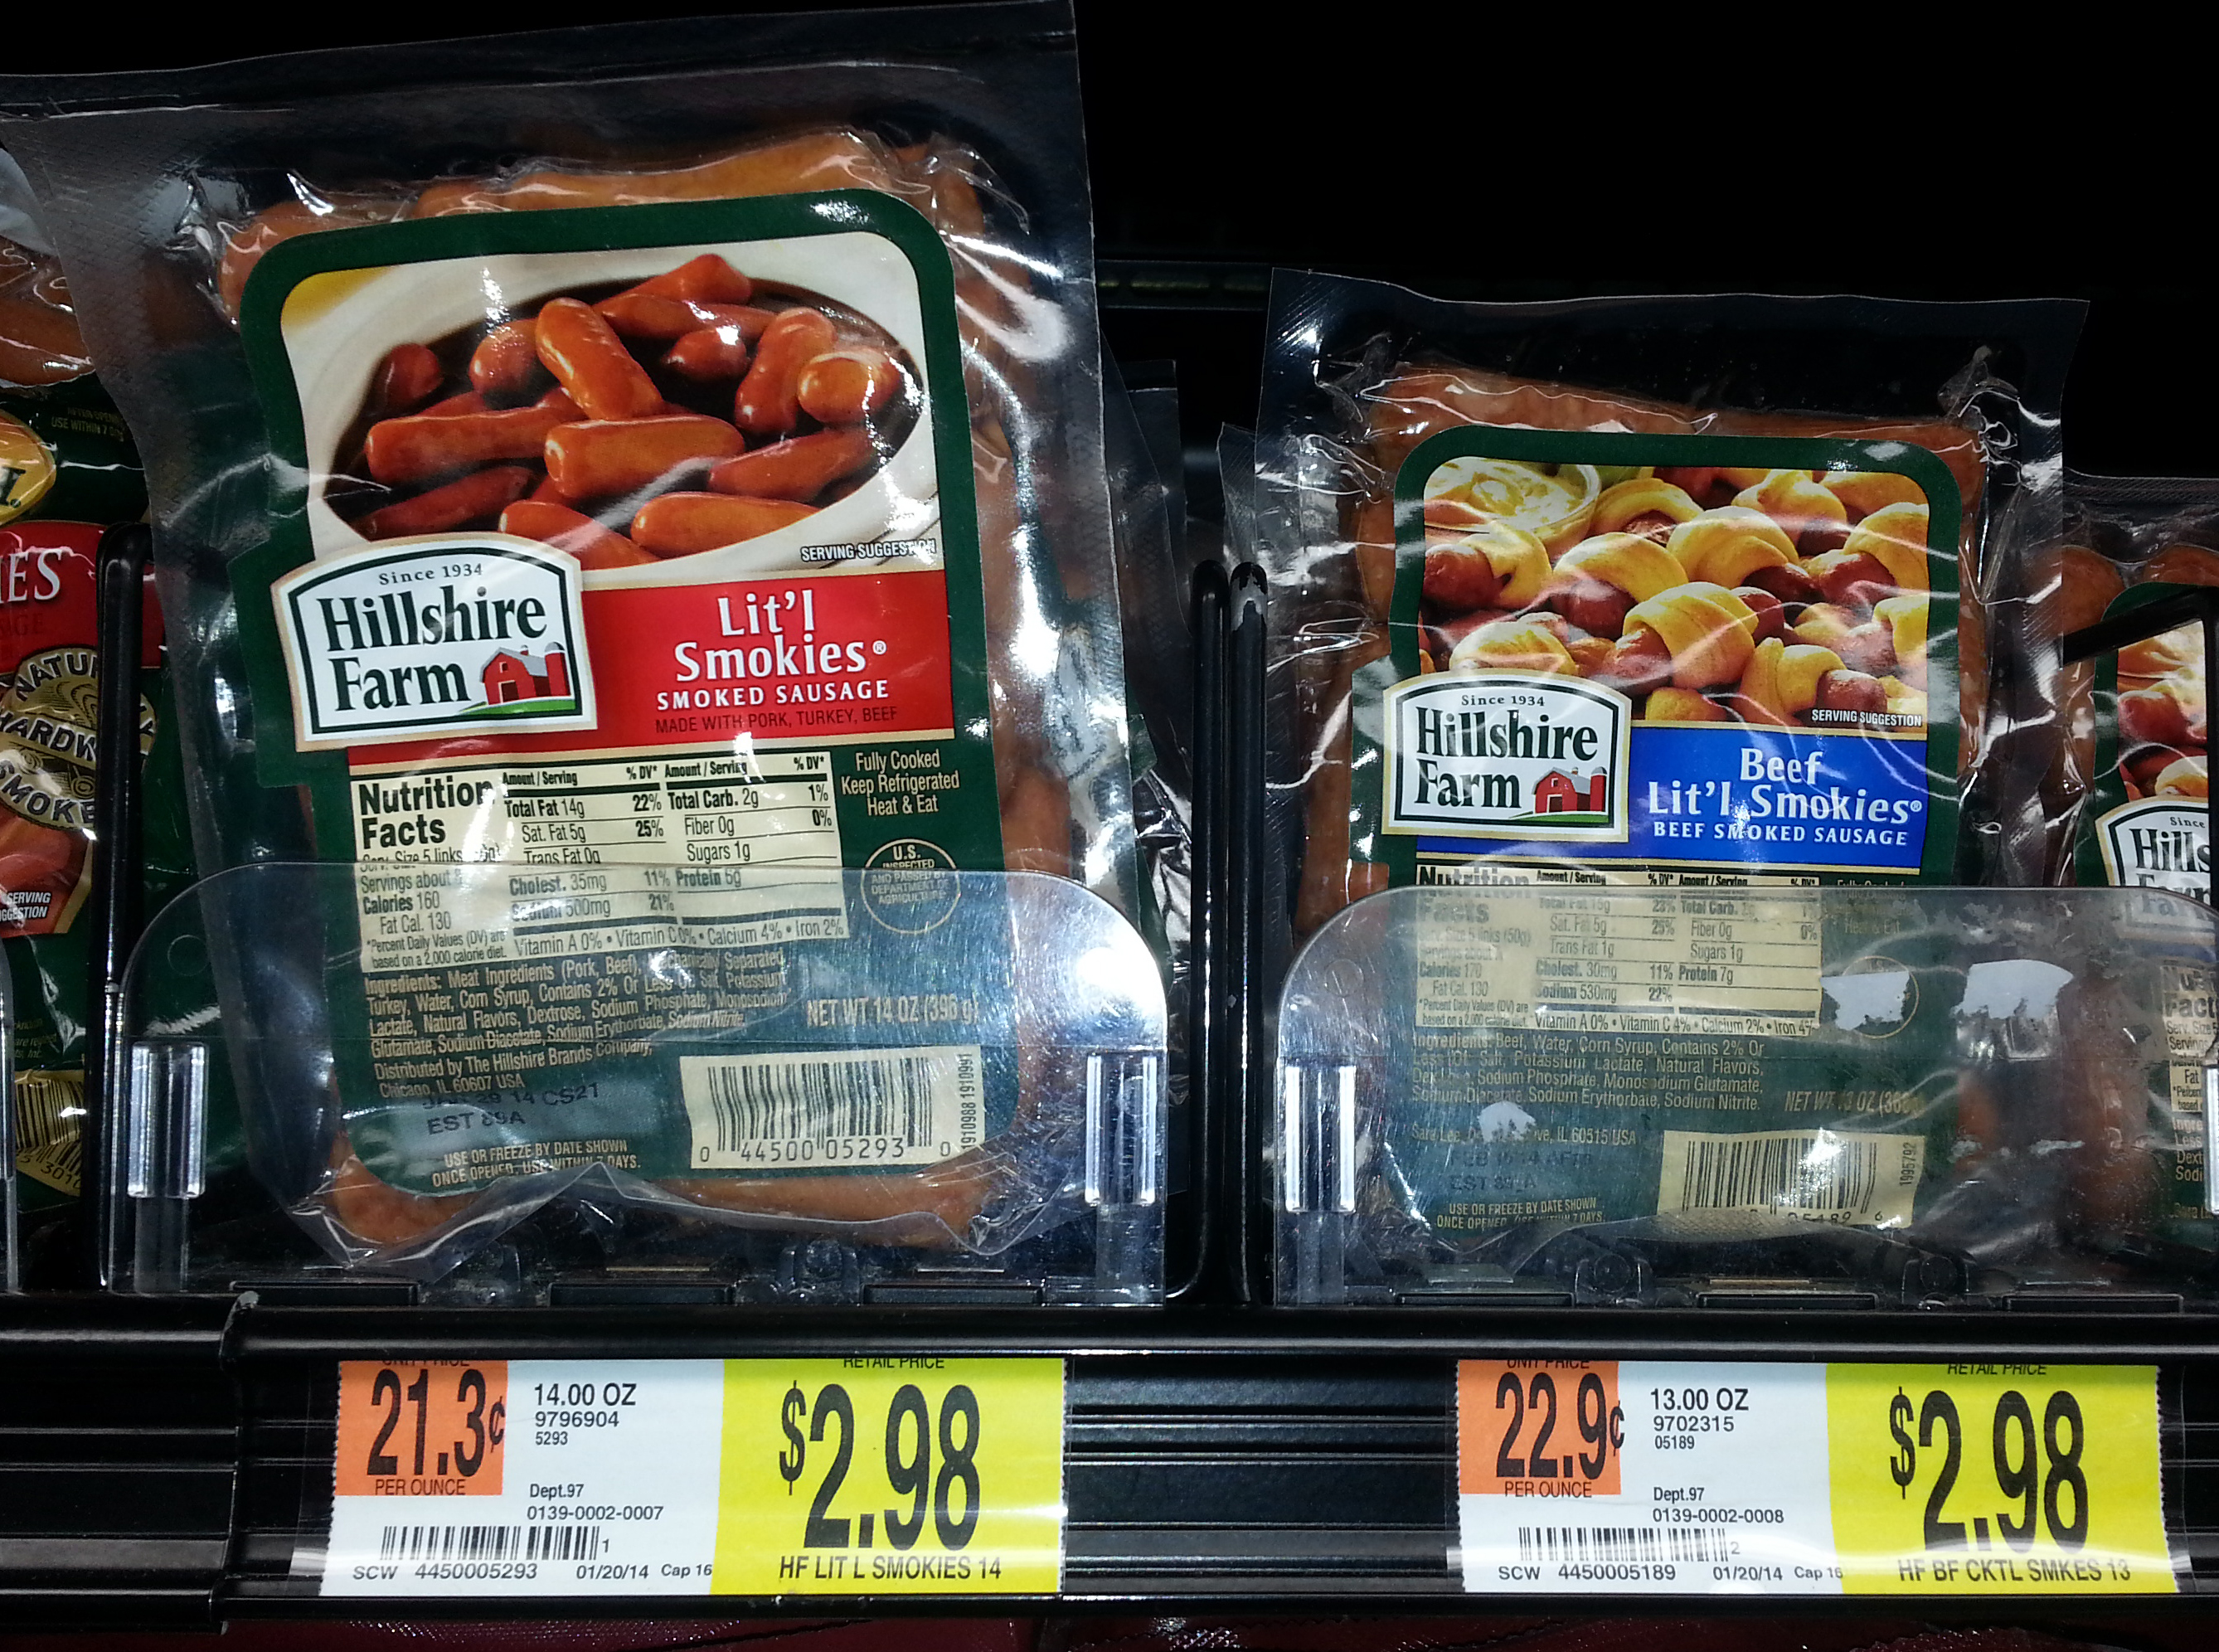 Hillshire Farm Lit'l Smokies Just $2.43 at Walmart!